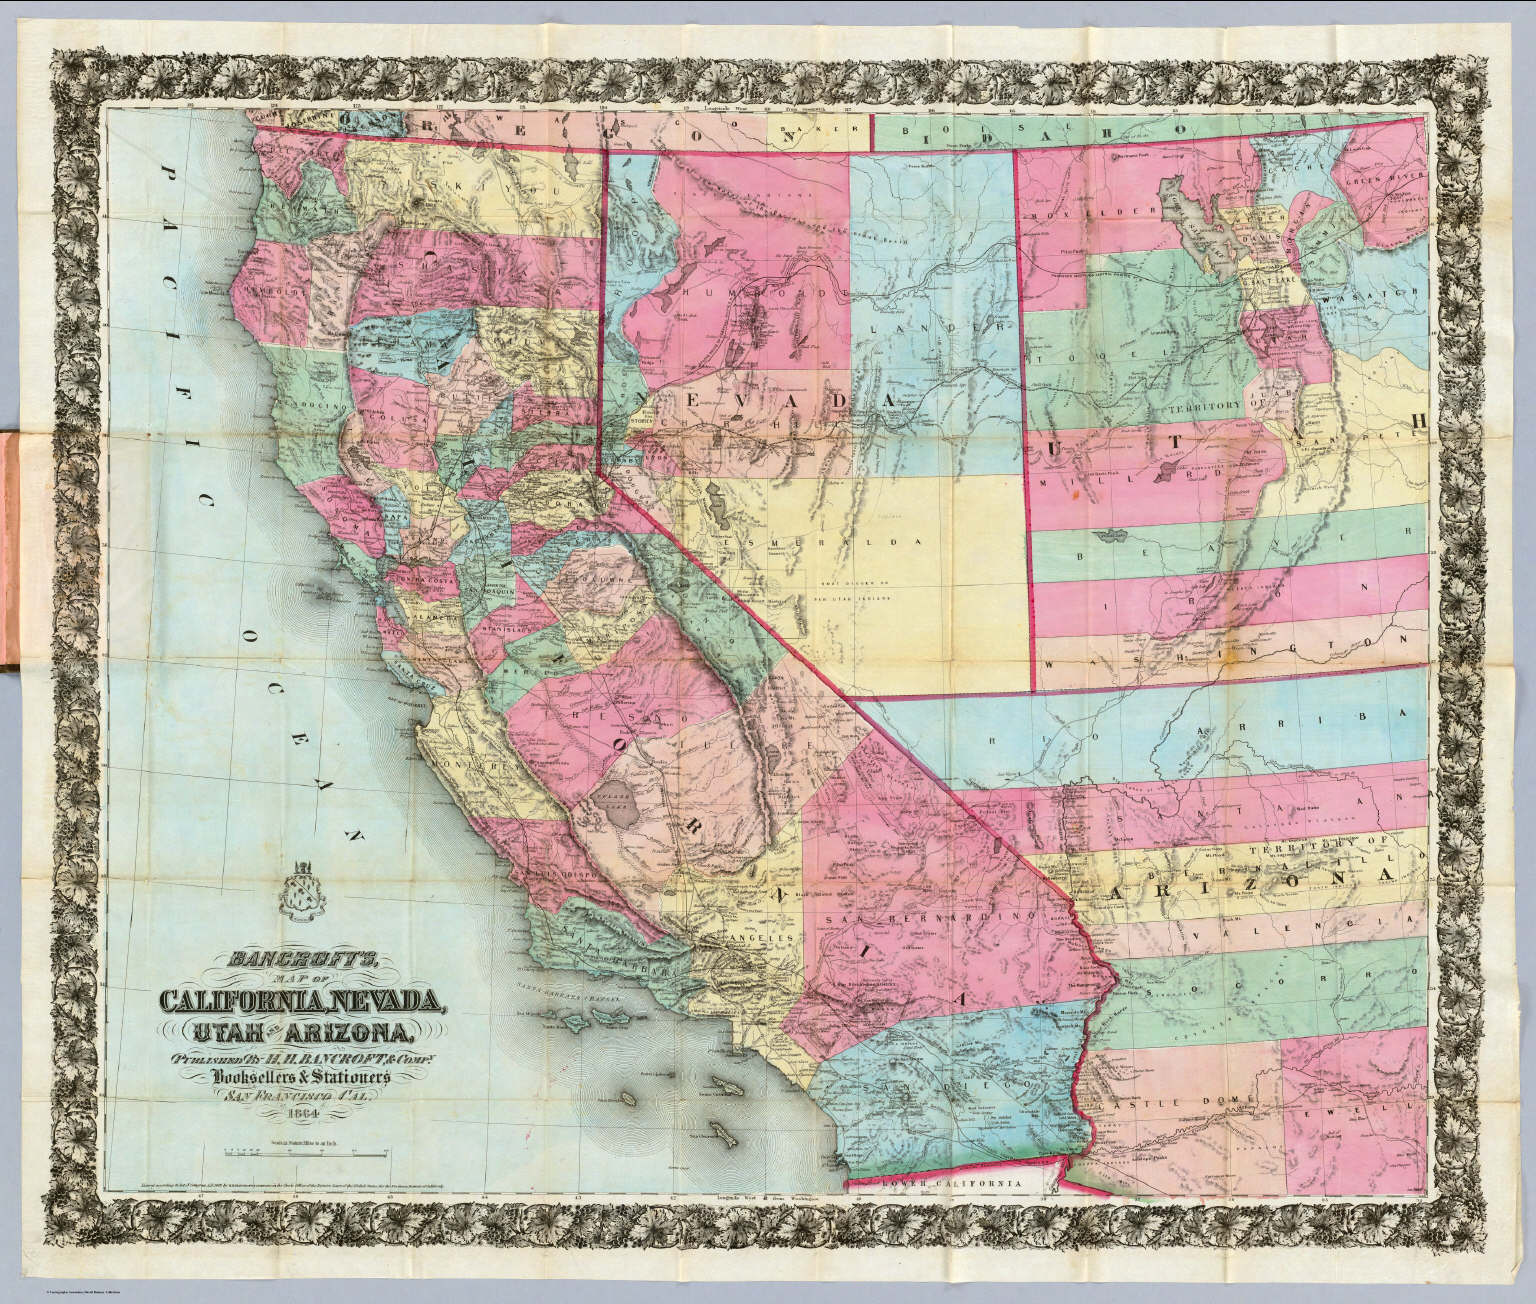 Map Of California Nevada And Arizona  Deboomfotografie